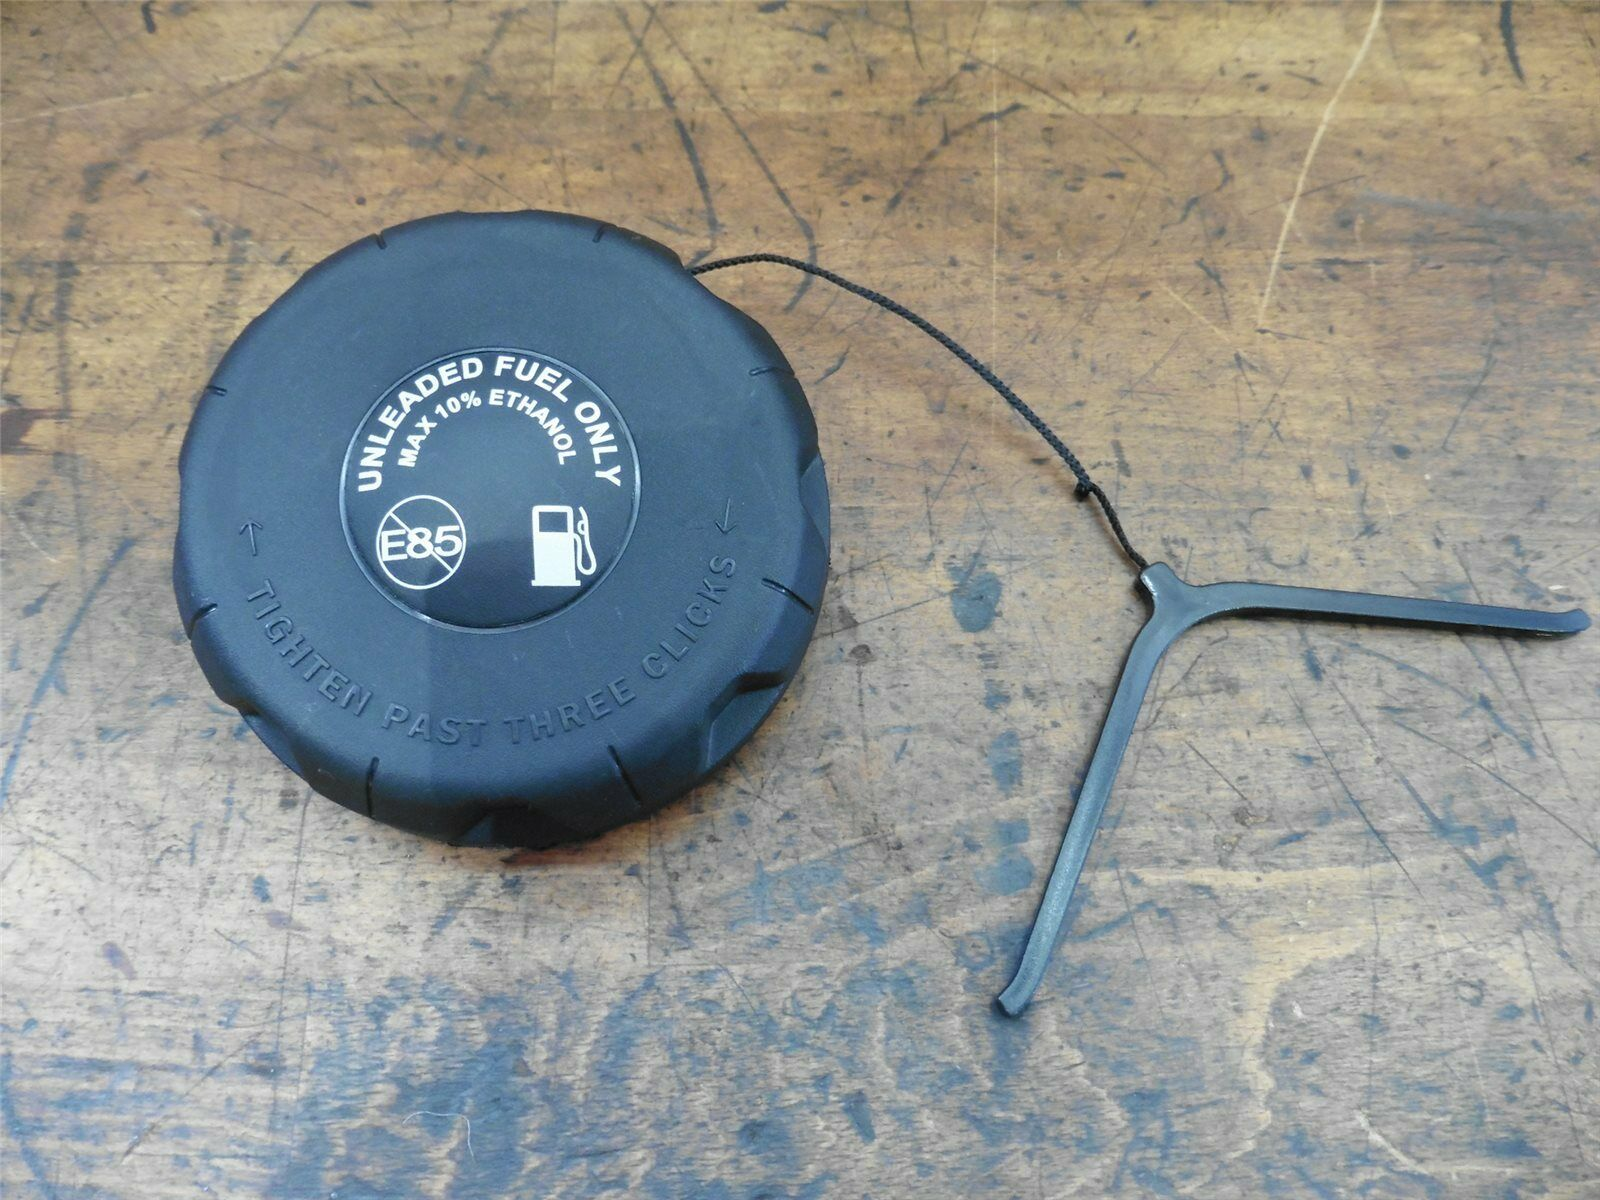 Original Gravely tanque Tank tanque de gasolina zerojourn pro-Turn Master stance ZT